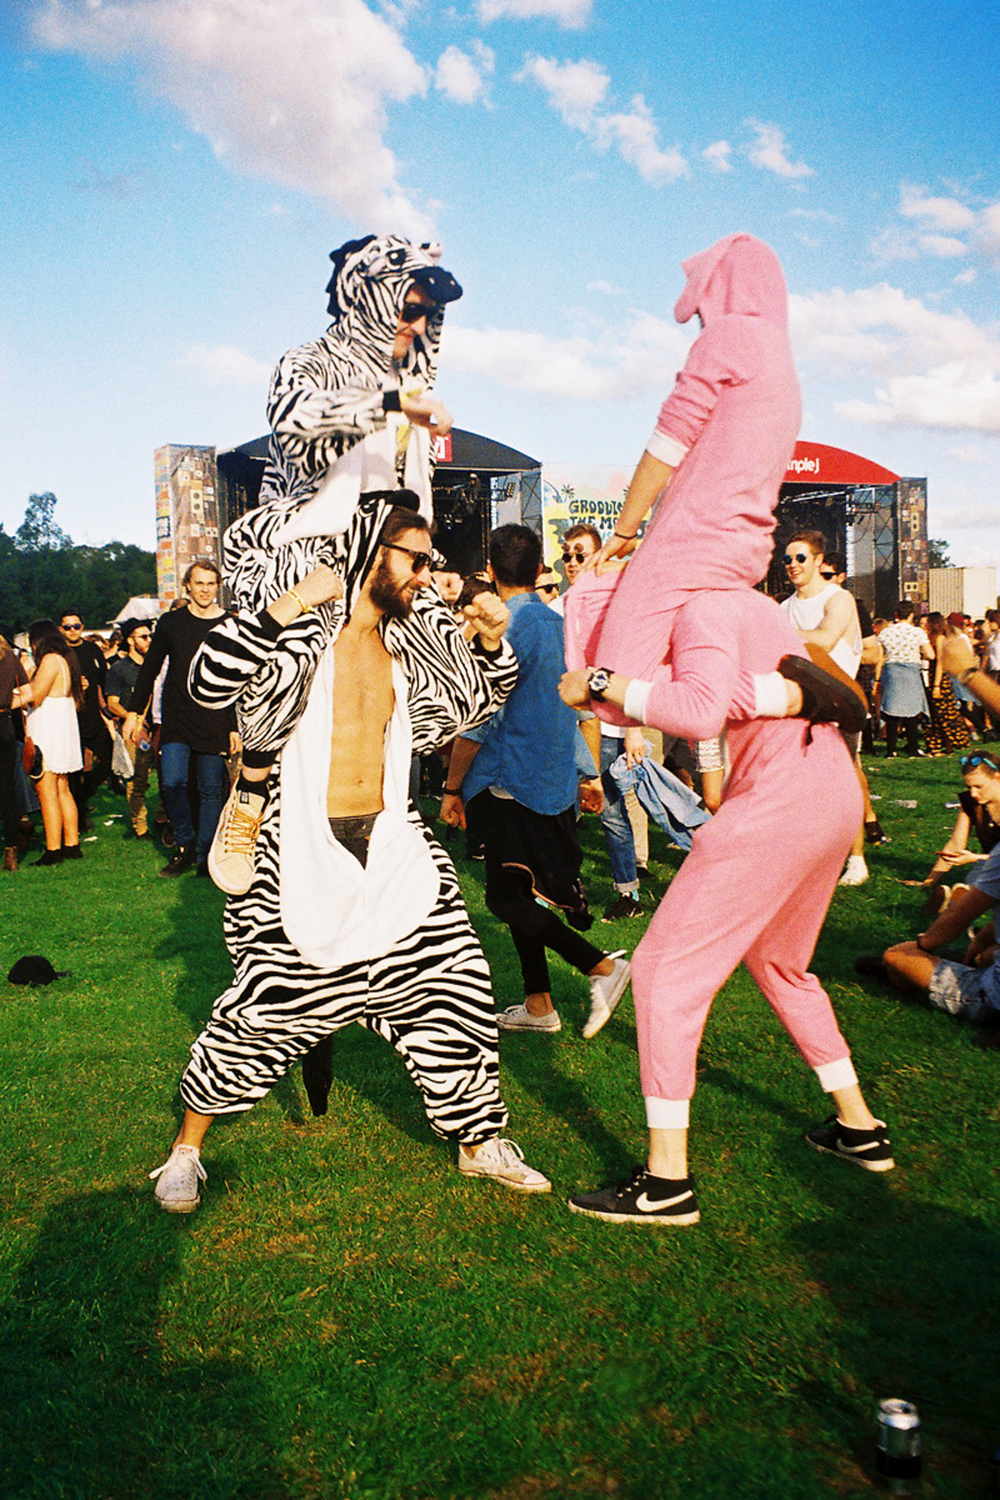 VOENA_GROOVIN_THE_MOO_CANBERRA_FILM_2015_35MM_PHOTOS-9.jpg